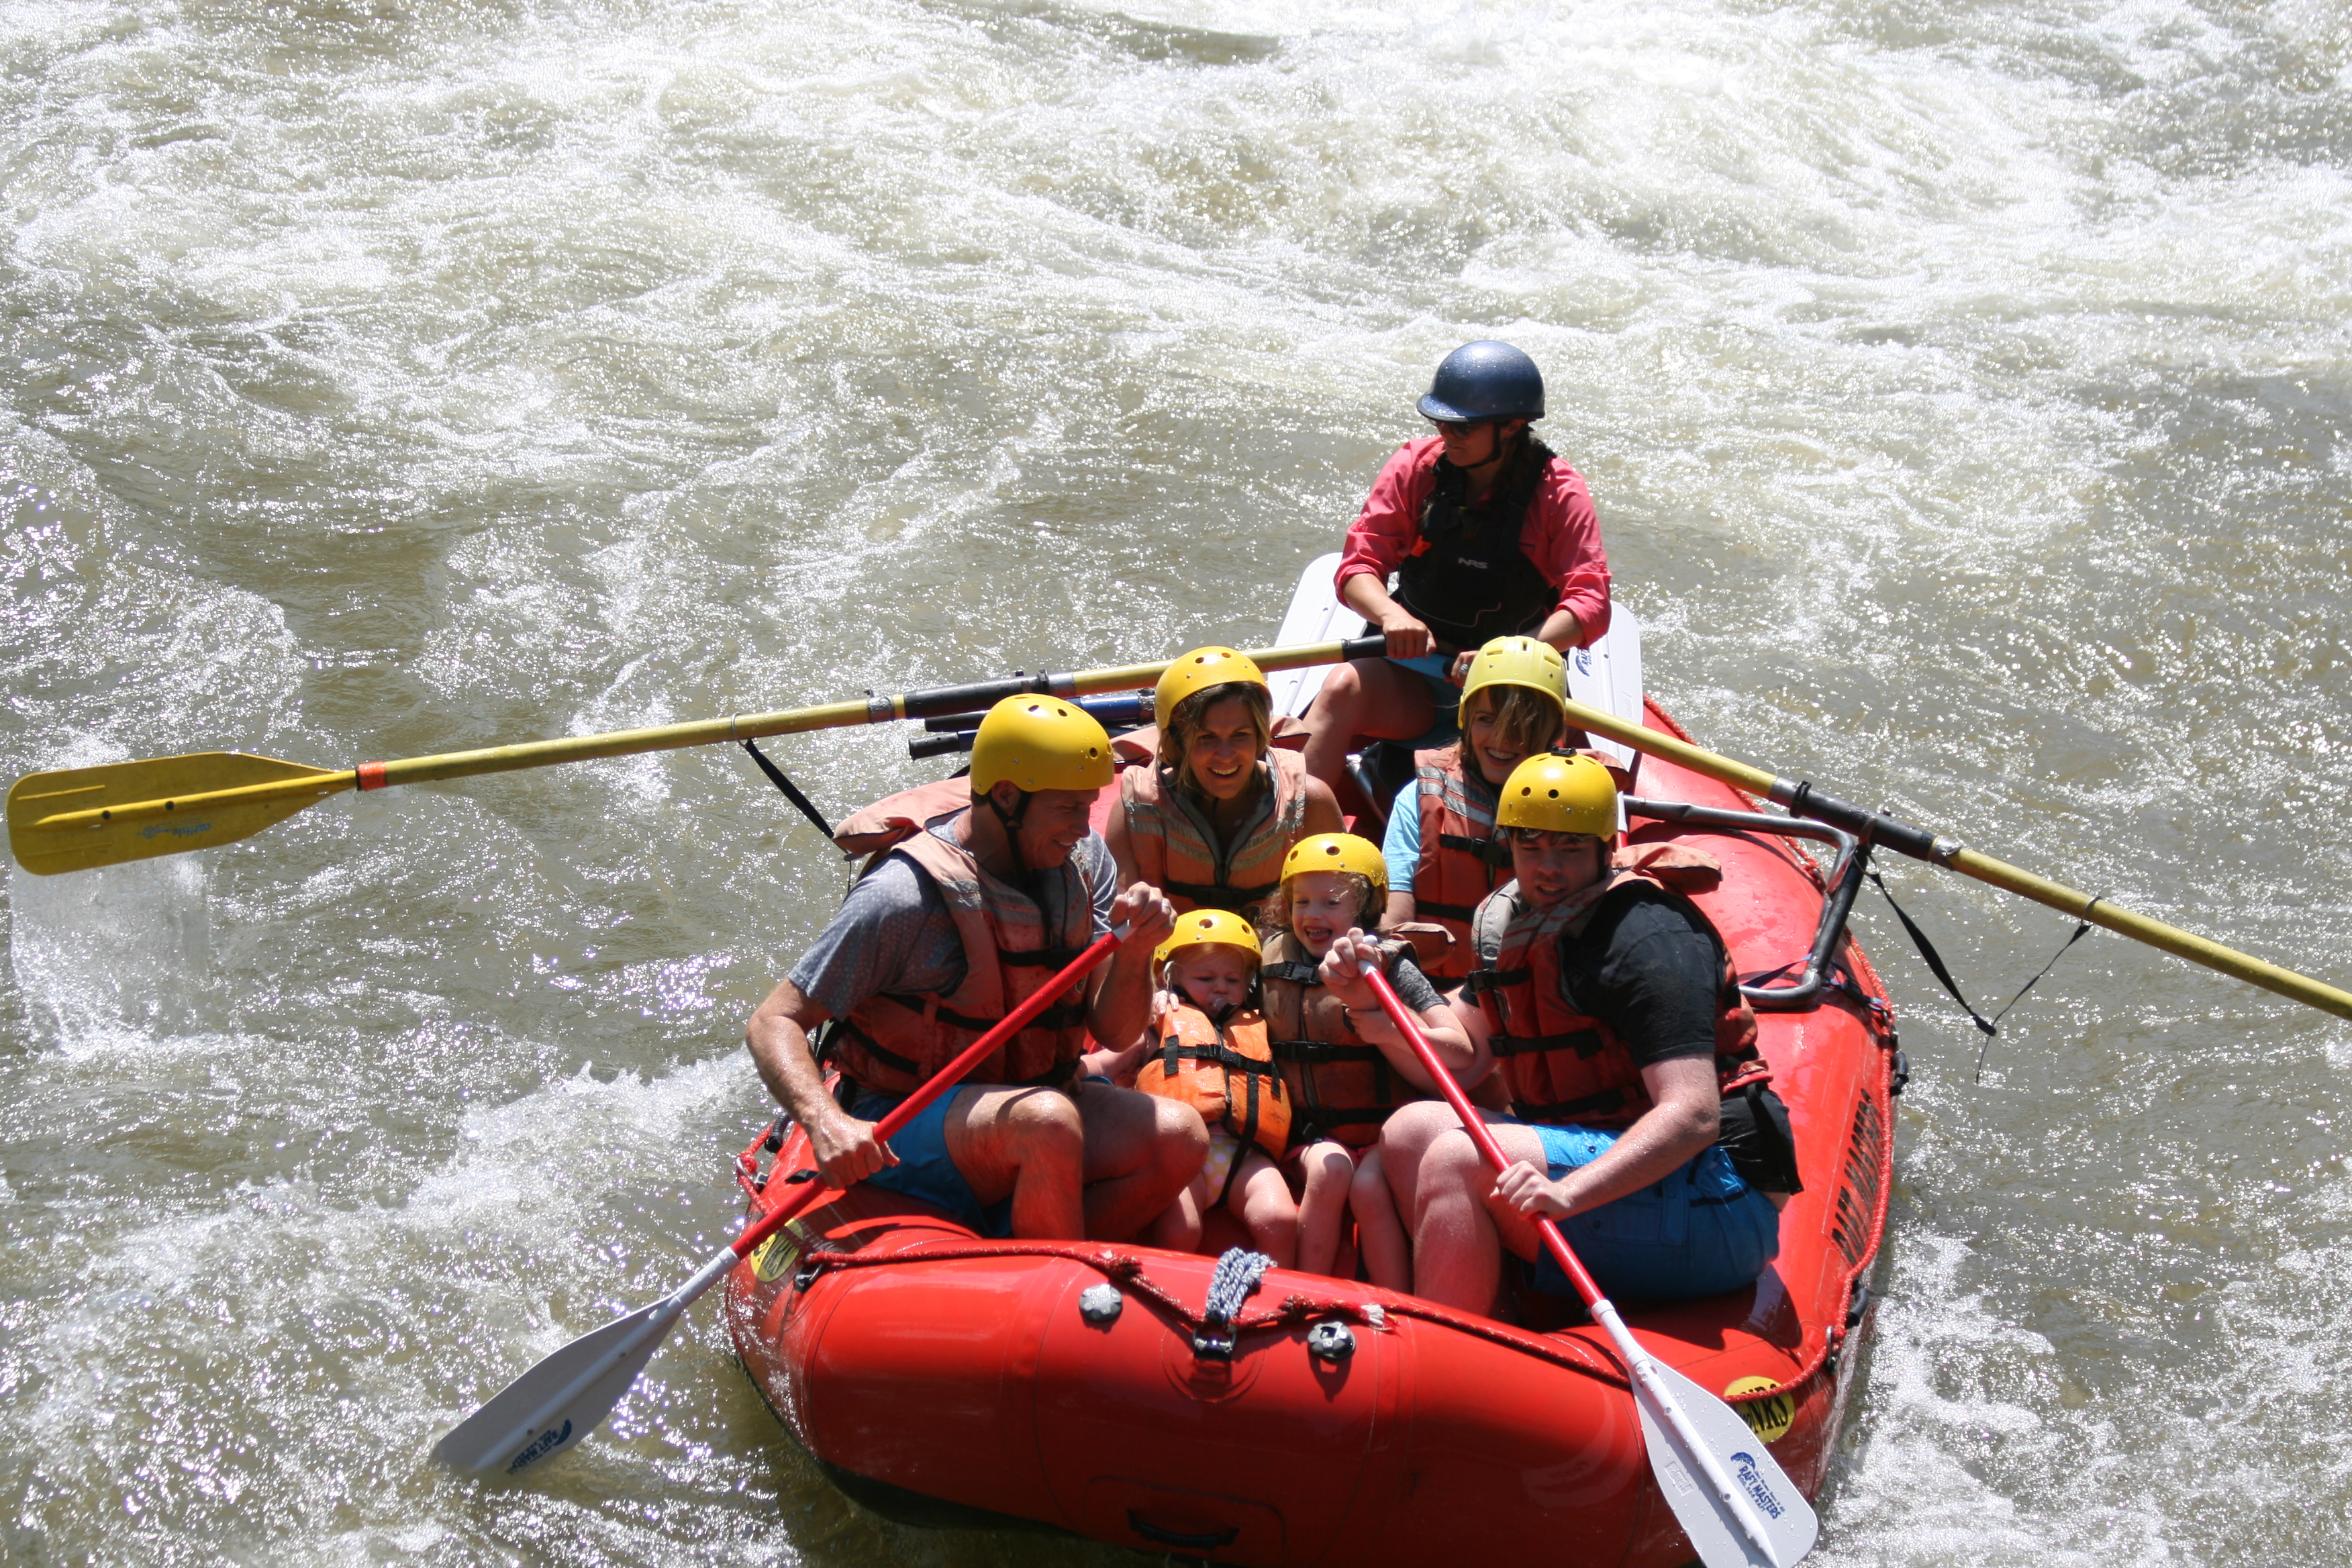 10 Whitewater Rafting Safety Tips Raft Masters